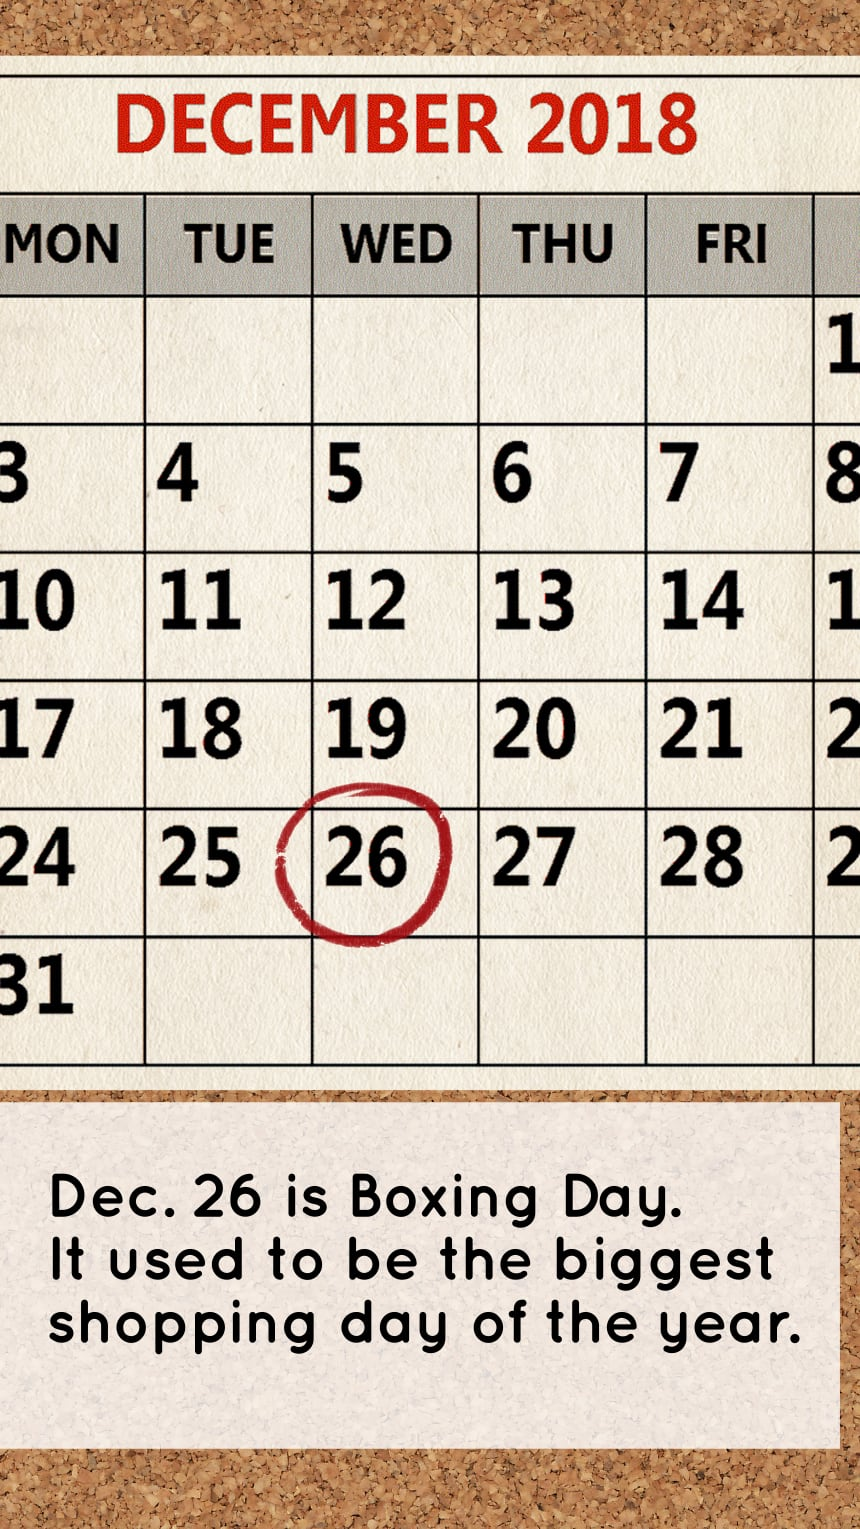 Dec. 26 is Boxing Day. It used to be the biggest shopping day of the year.